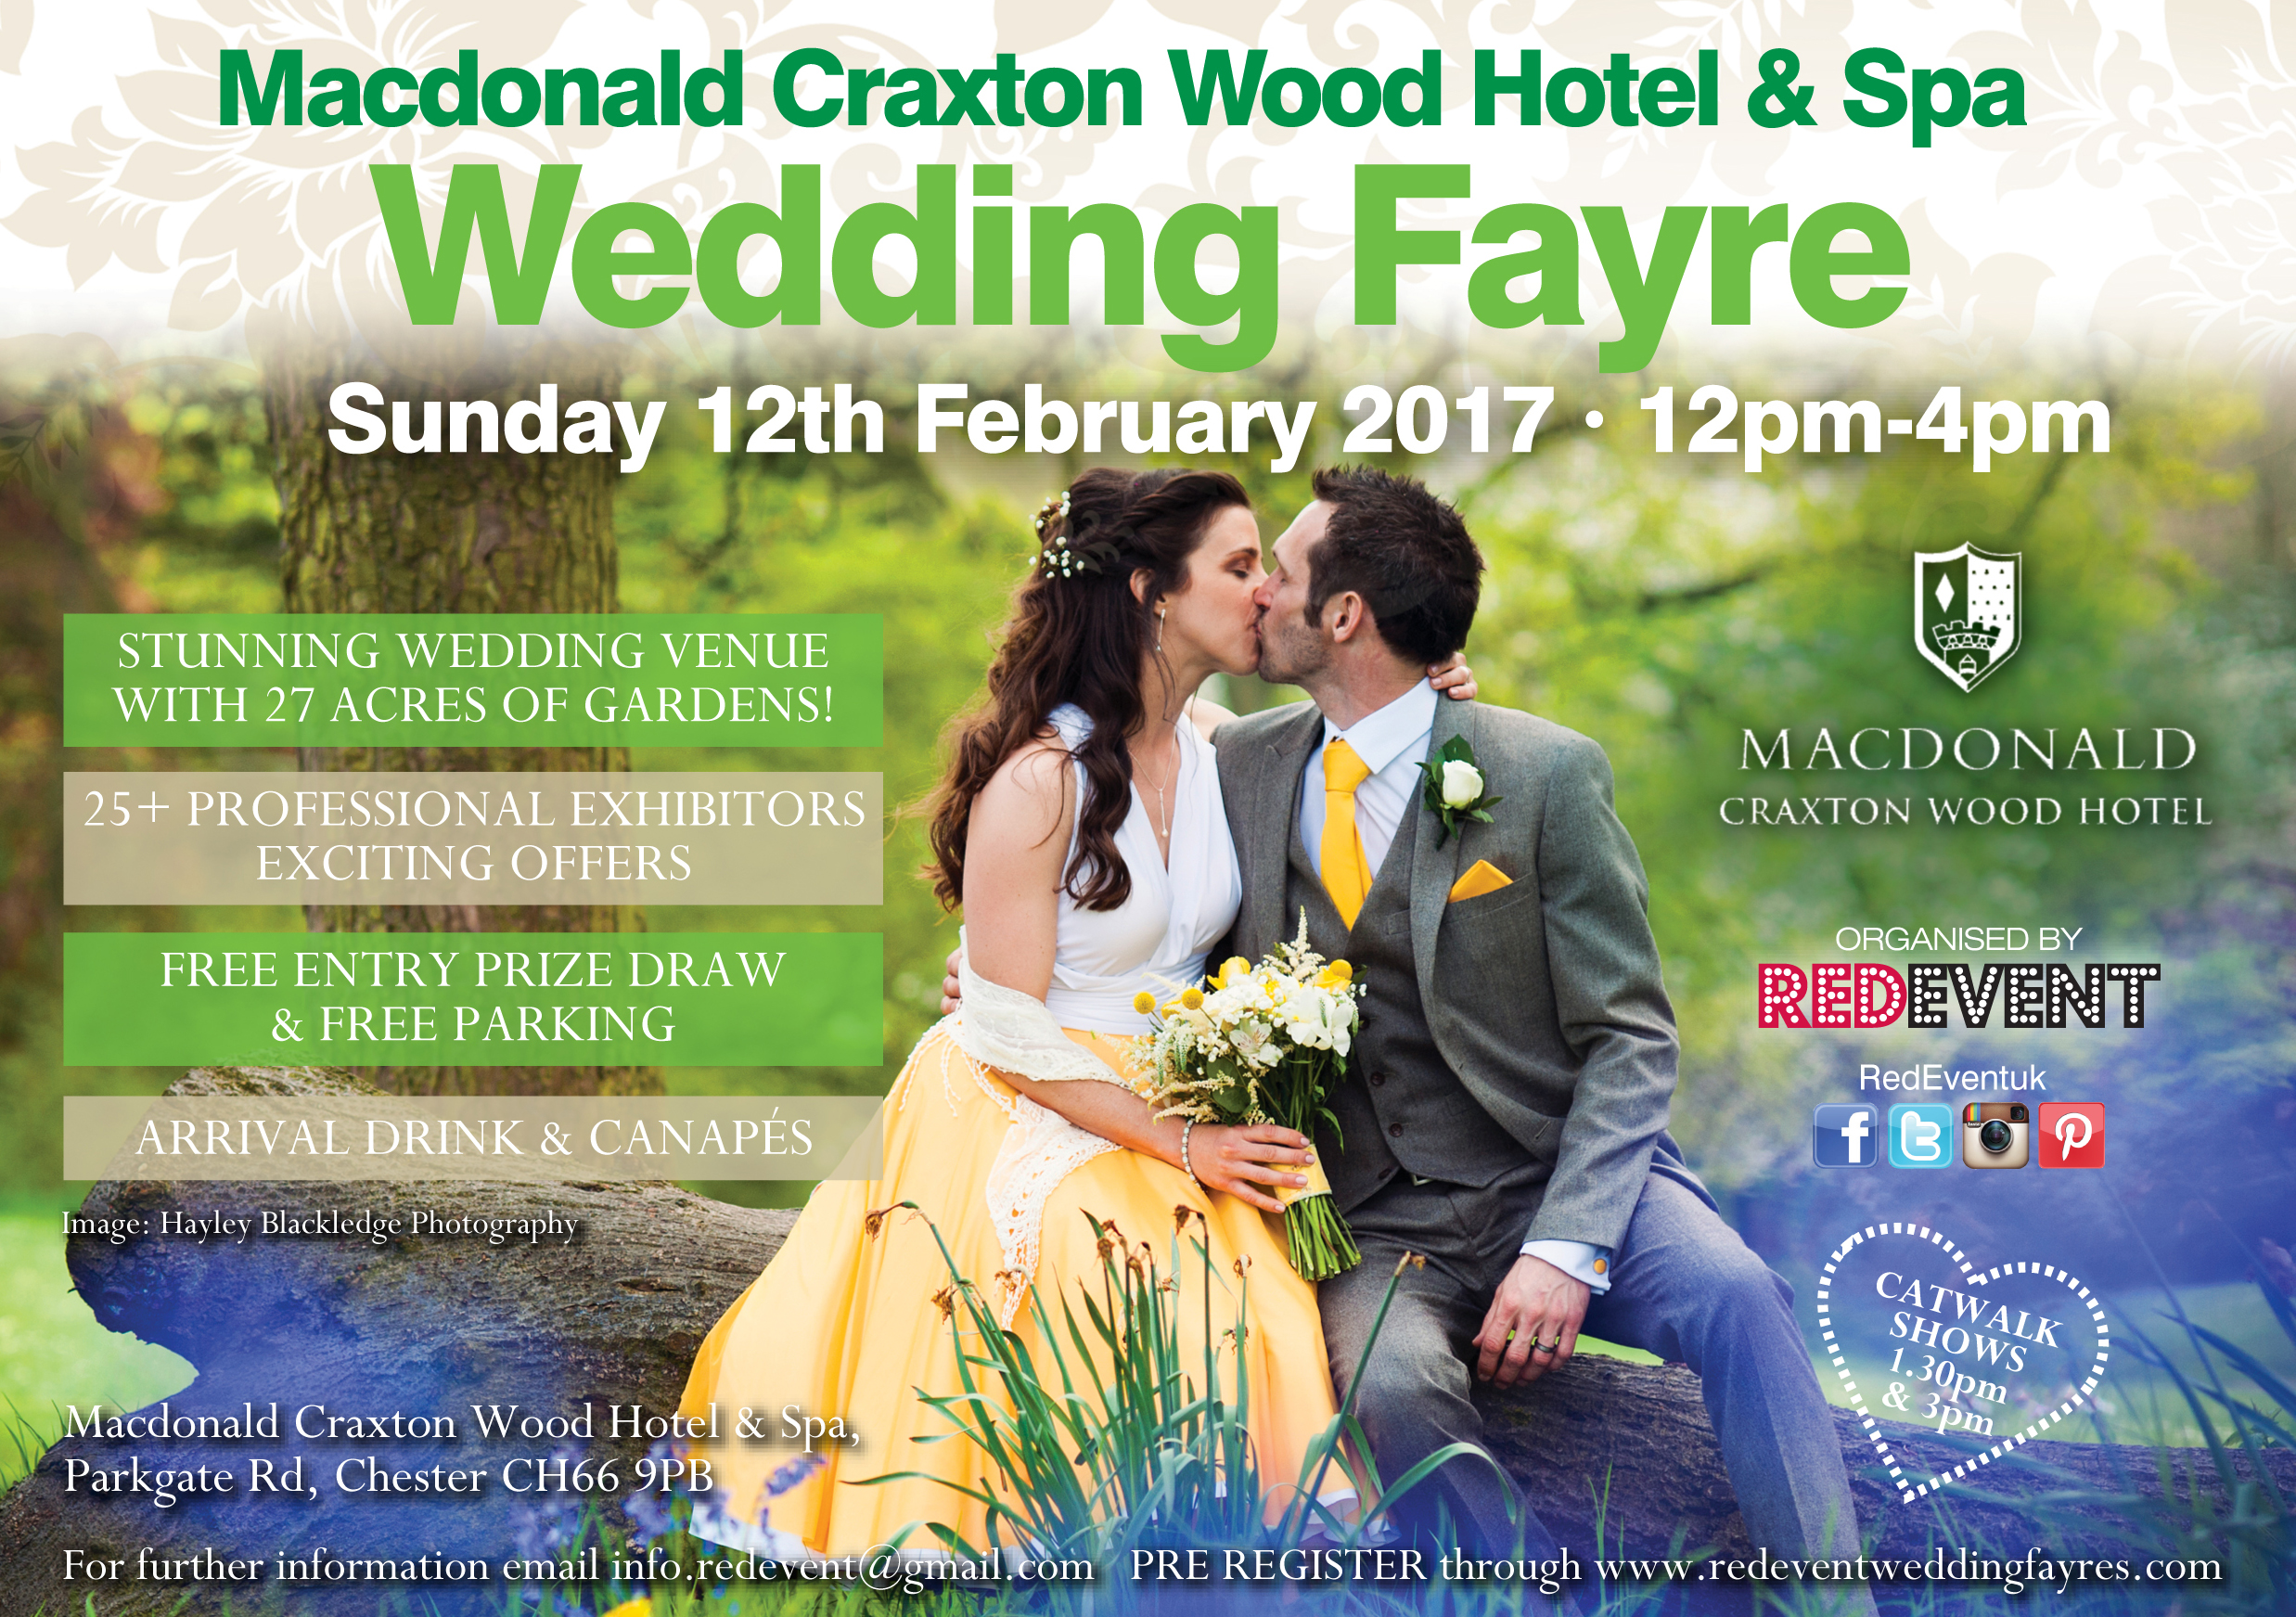 Macdonald Craxton Wood Wedding Fayre - Red Event Chester Wedding Fair